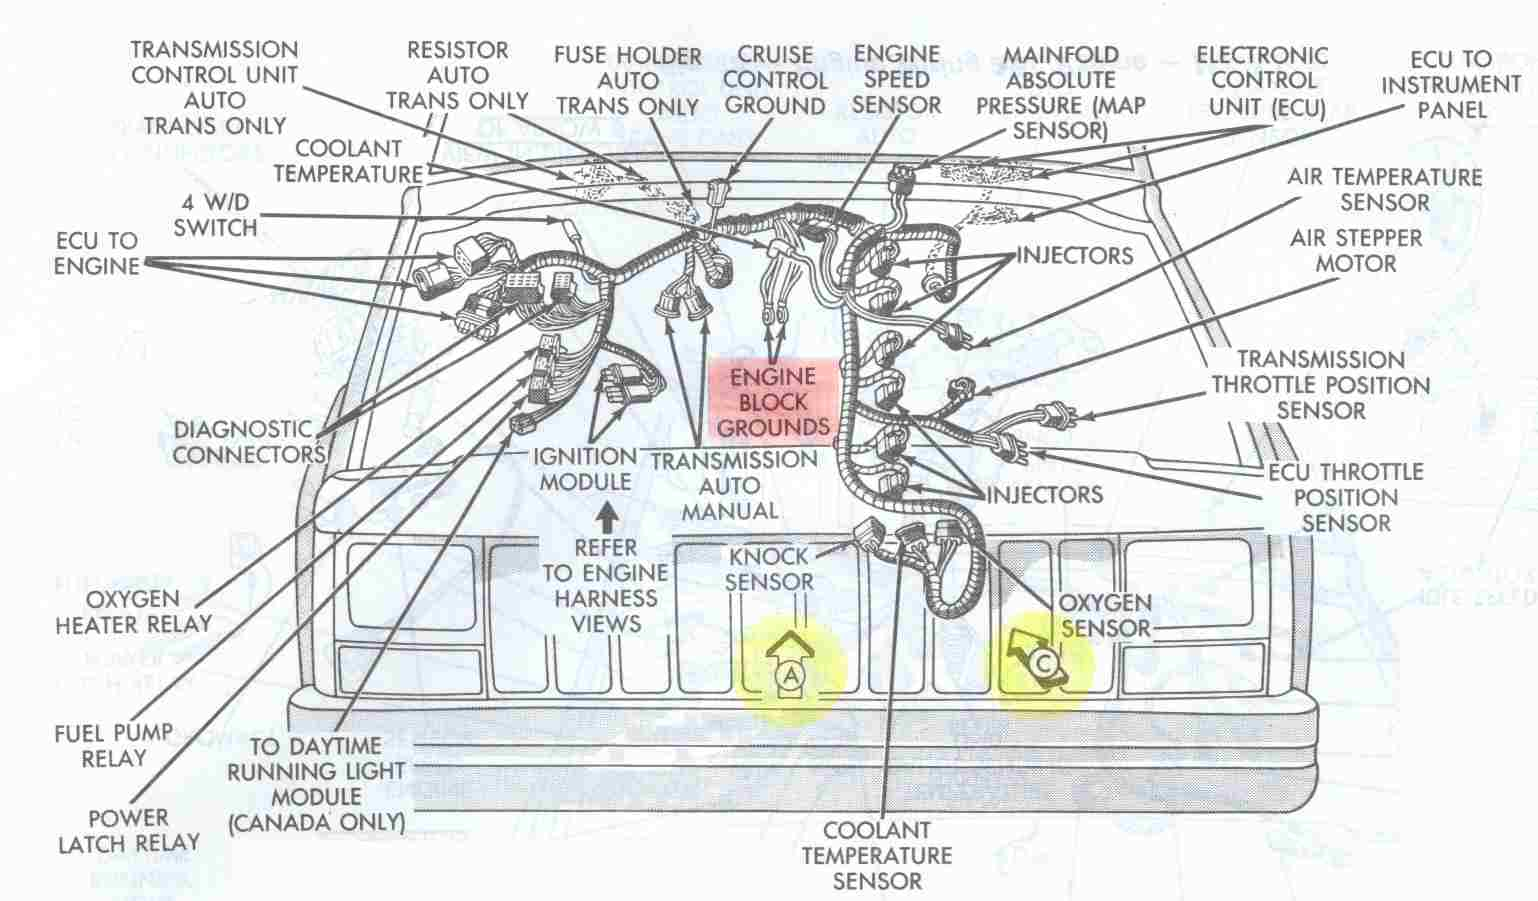 Electrical_Engine_Ground_Points_Overview jeep cherokee electrical diagnosing erratic behavior of engine 2007 Jeep Wrangler Wiring Diagram at fashall.co